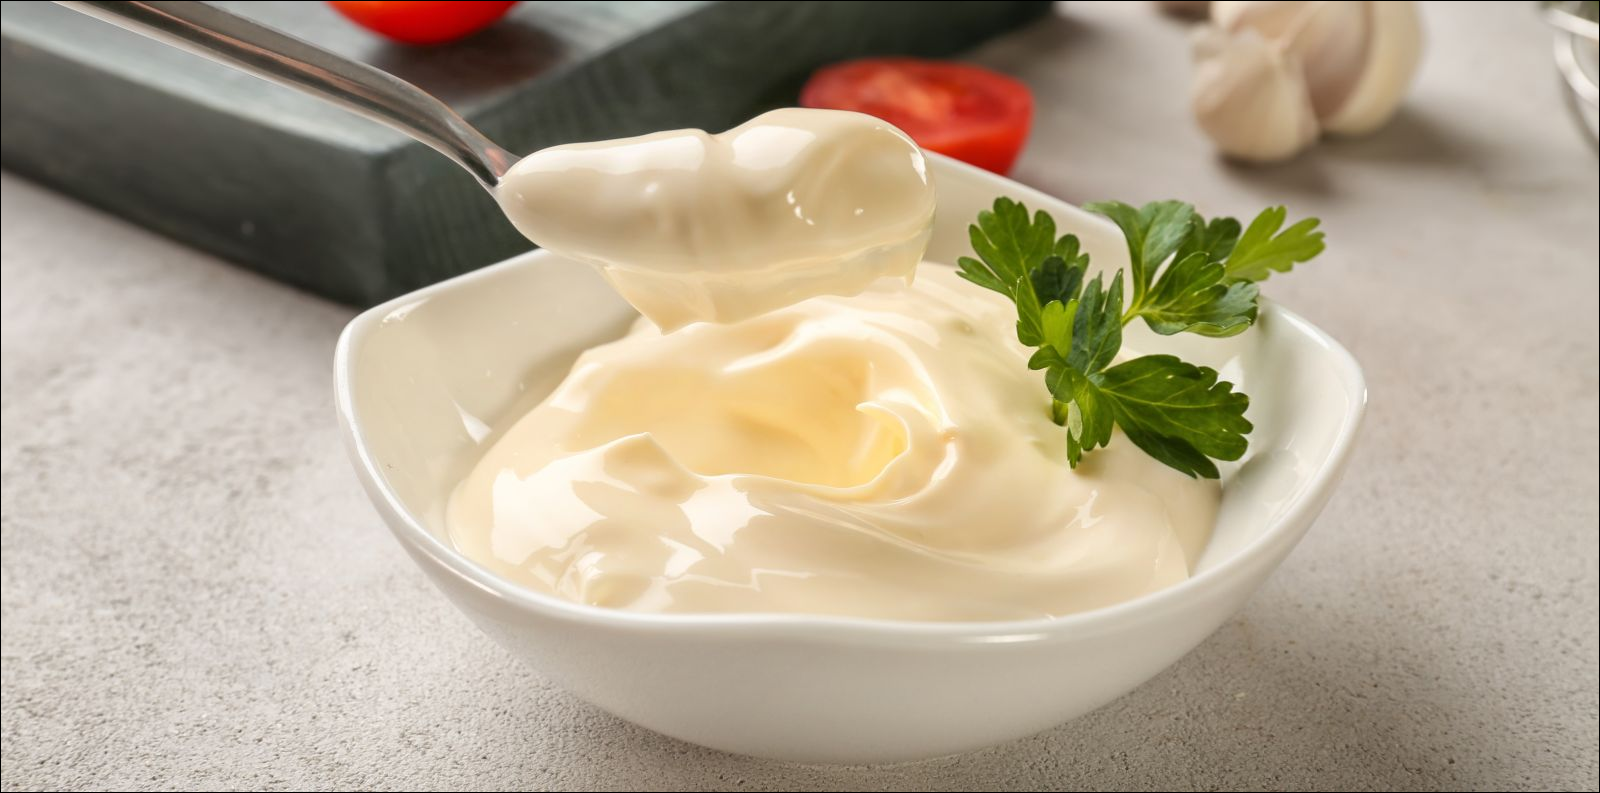 mayonnaise in bowl and spoon on kitchen table